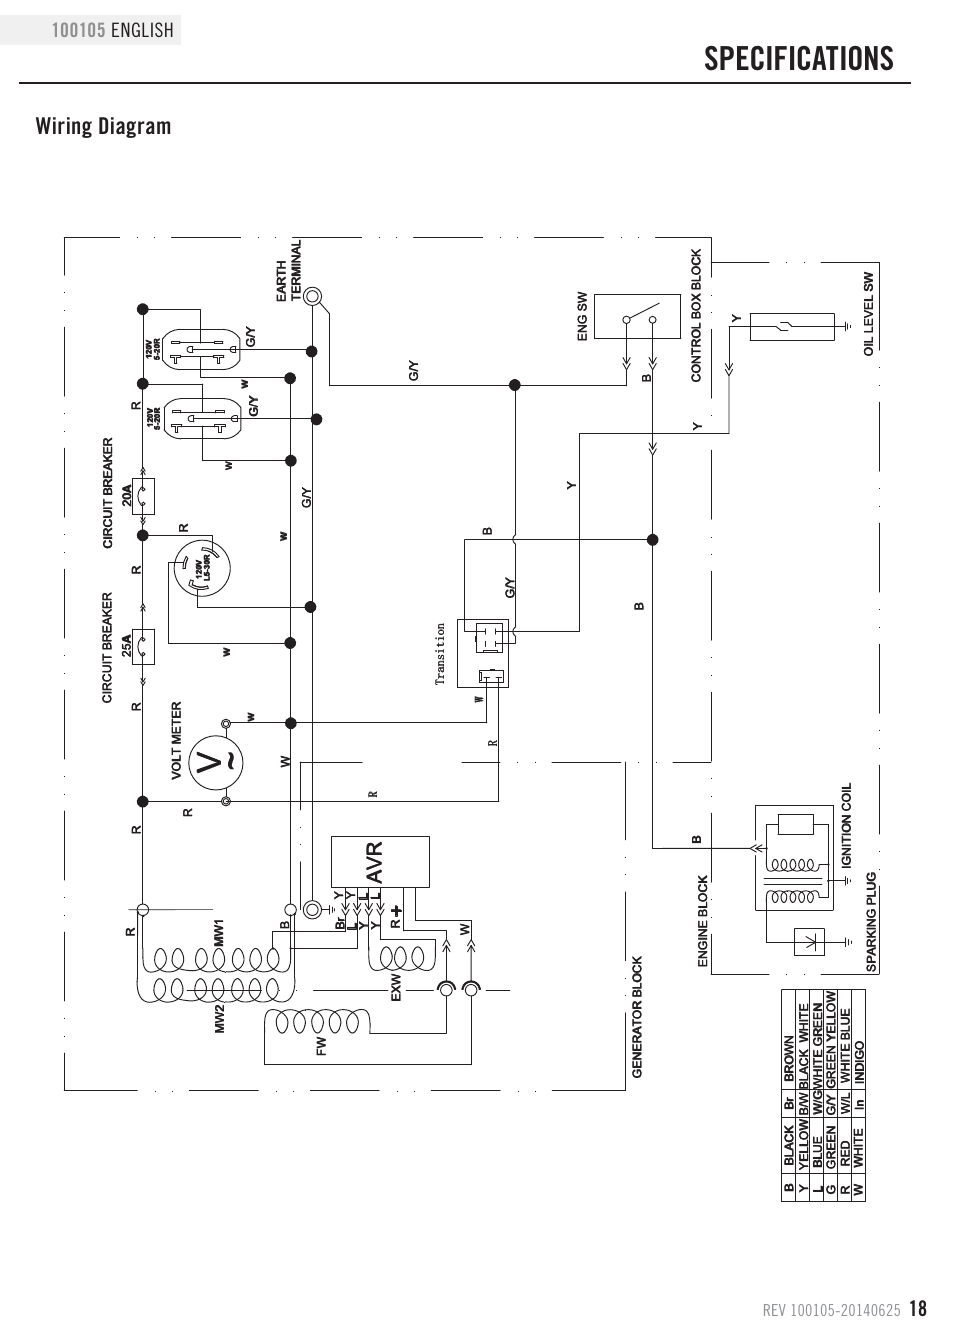 Champion Wiring Diagram Simple Options 8000 Lb Winch Specifications Power Equipment 100105 Color Coding